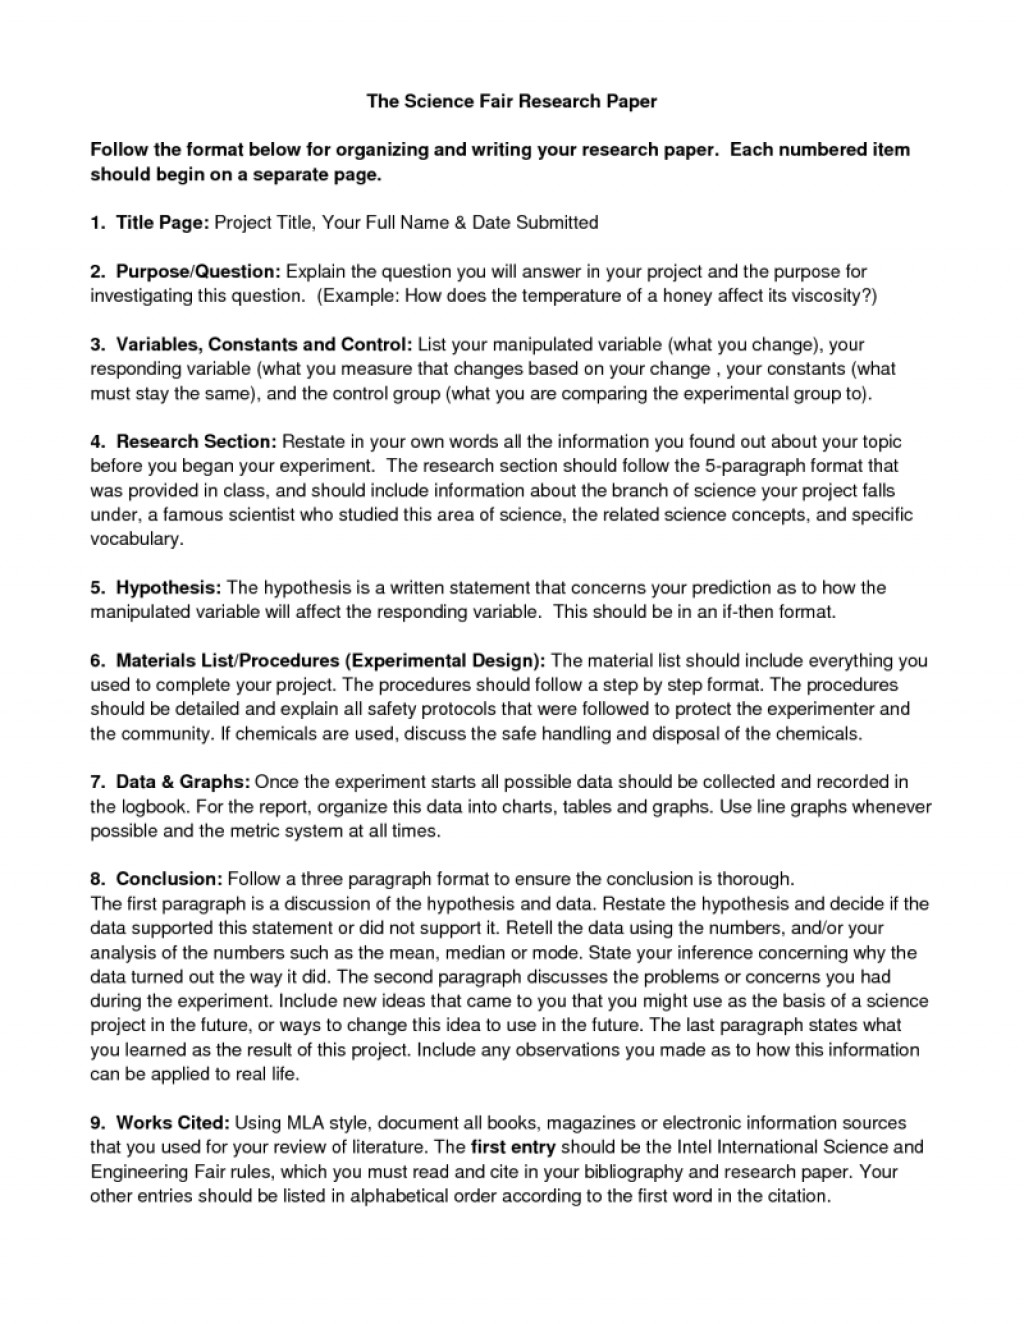 010 Ideas Of Science Fairearch Paper Outline Unique Political Guidelines Guidelinesresize8001035 Best Website To Read Papers Outstanding Research Large